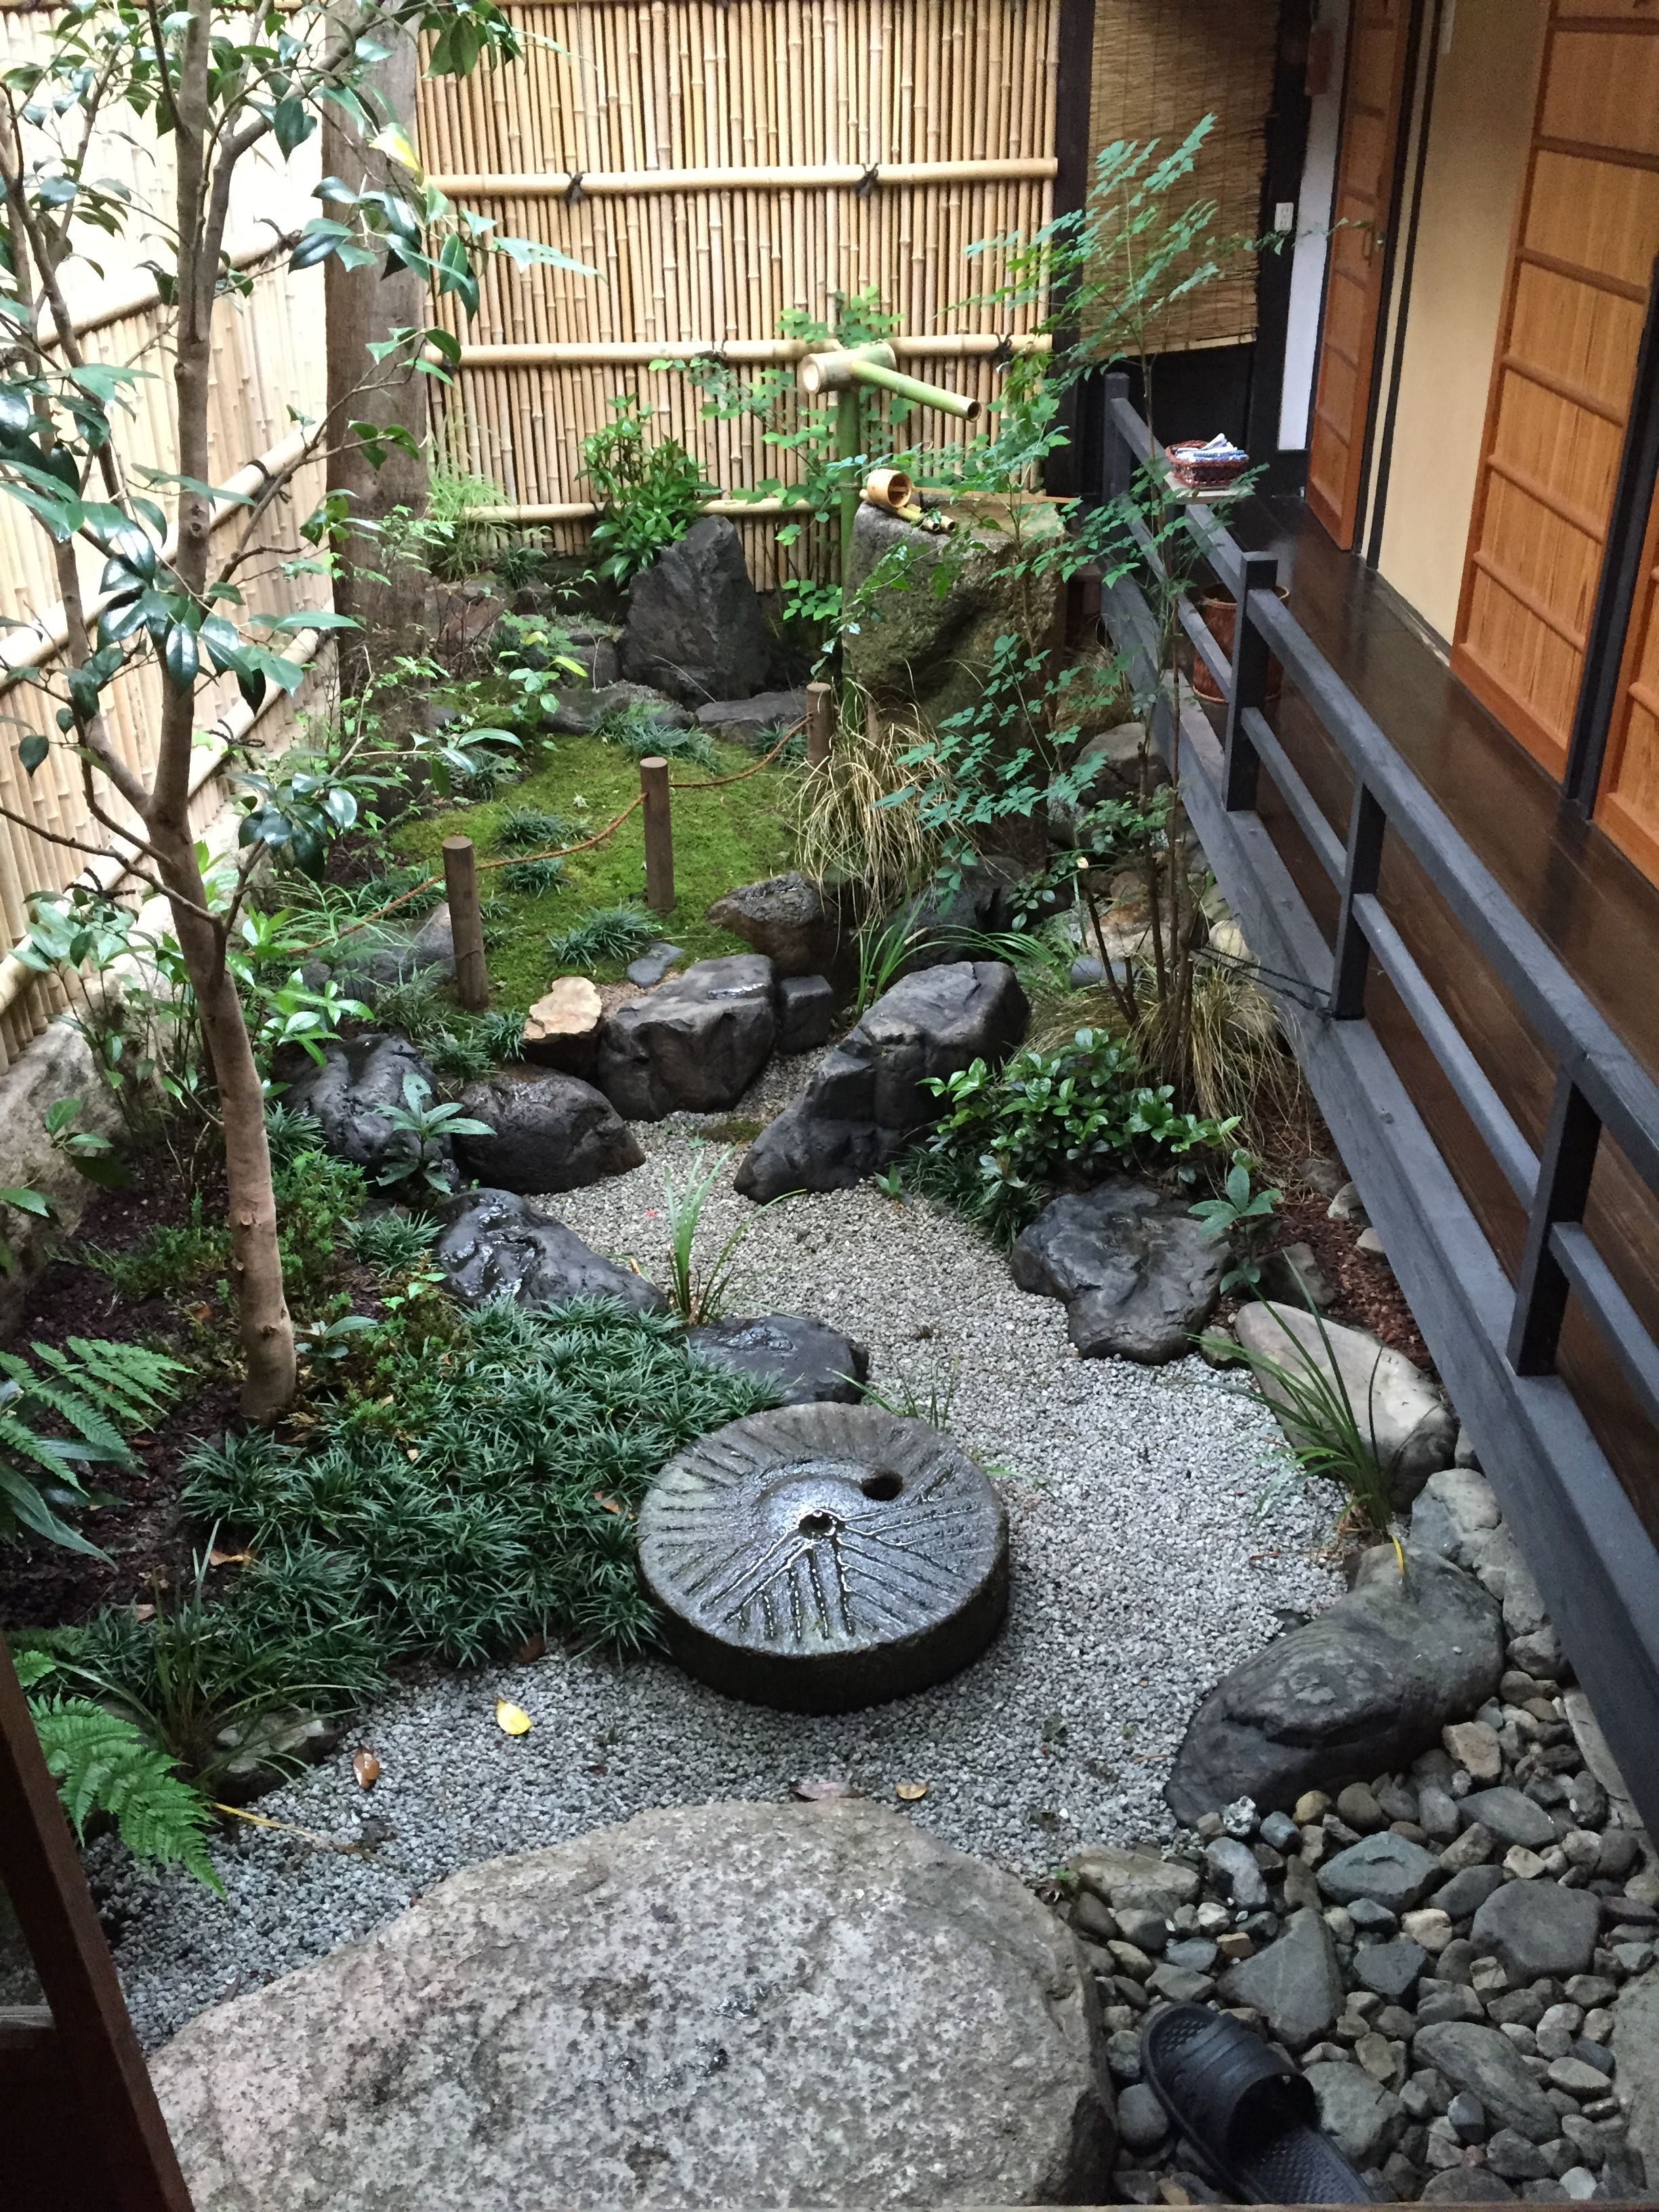 Pin by Kate Hoy on Wanderlust | Small japanese garden ... on Small Backyard Japanese Garden Ideas id=55784